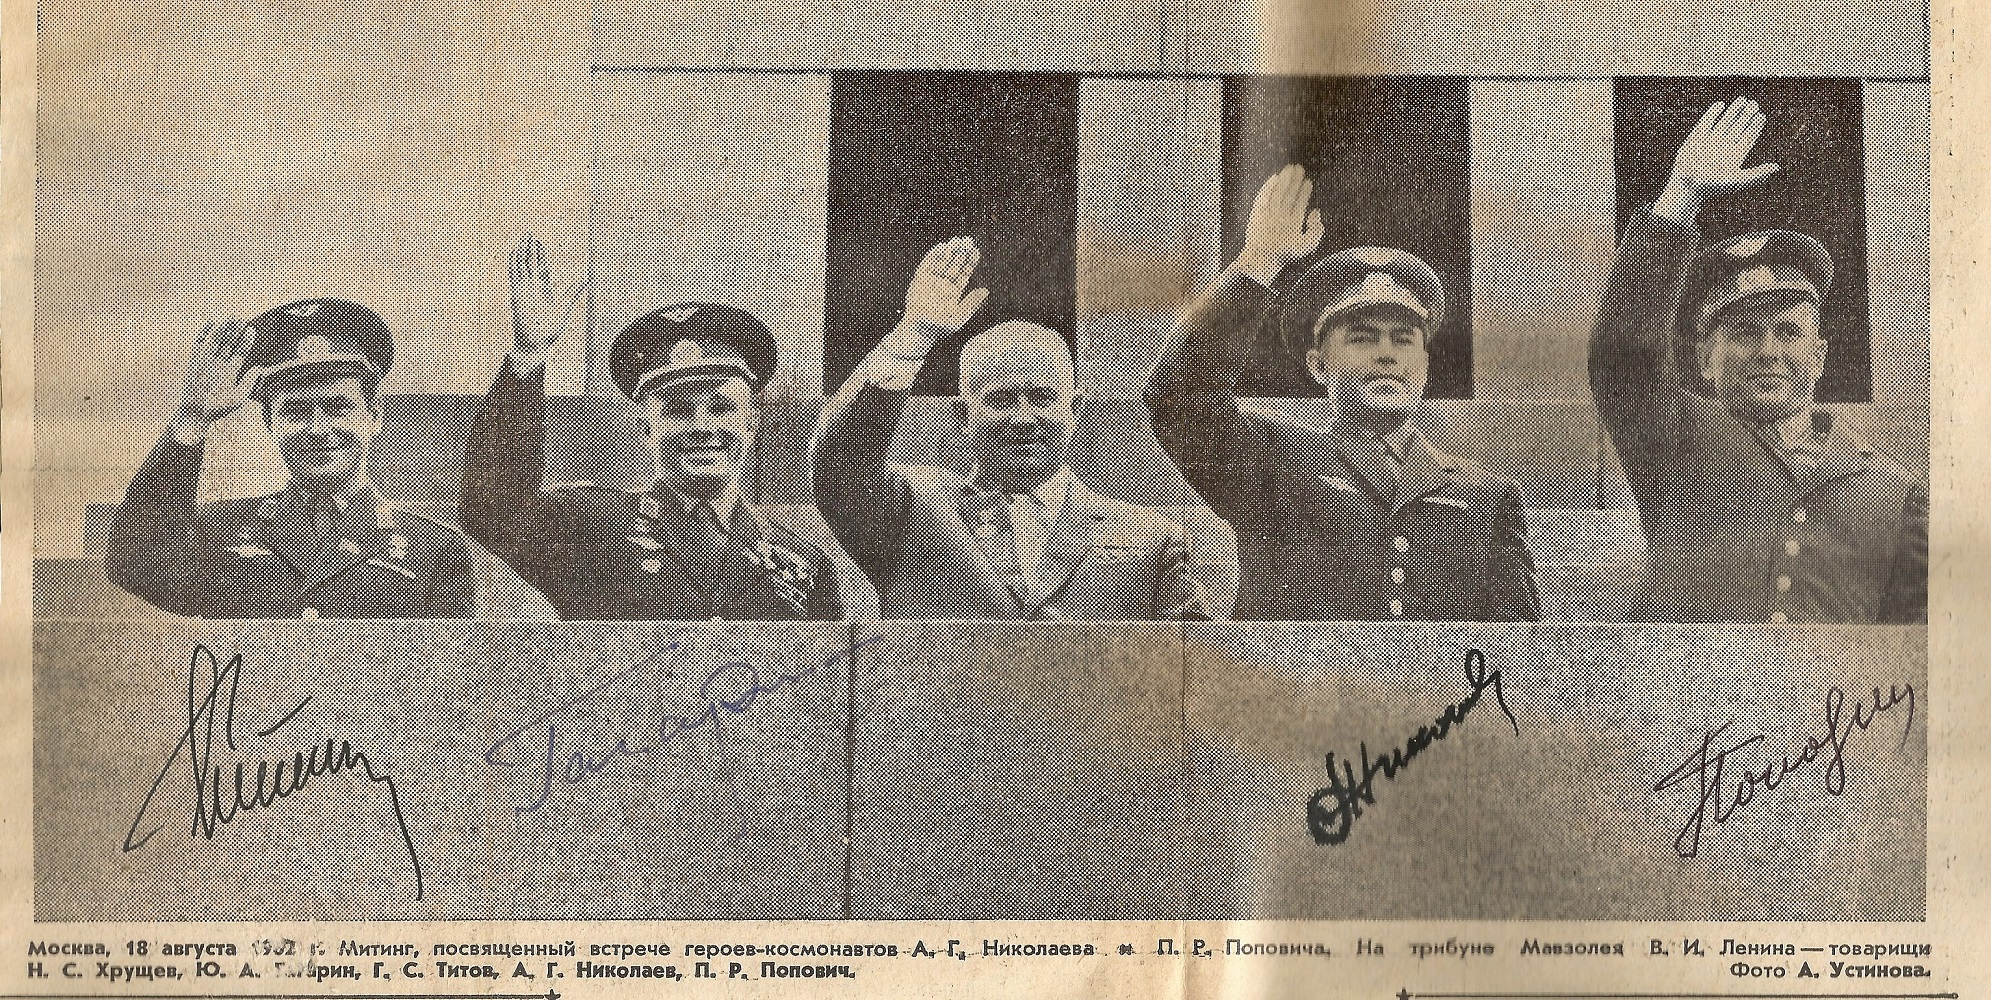 1950/60s Russian Cosmonauts multiple signed hard backed scrapbook compiled by a worker at Baikonur - Image 10 of 22